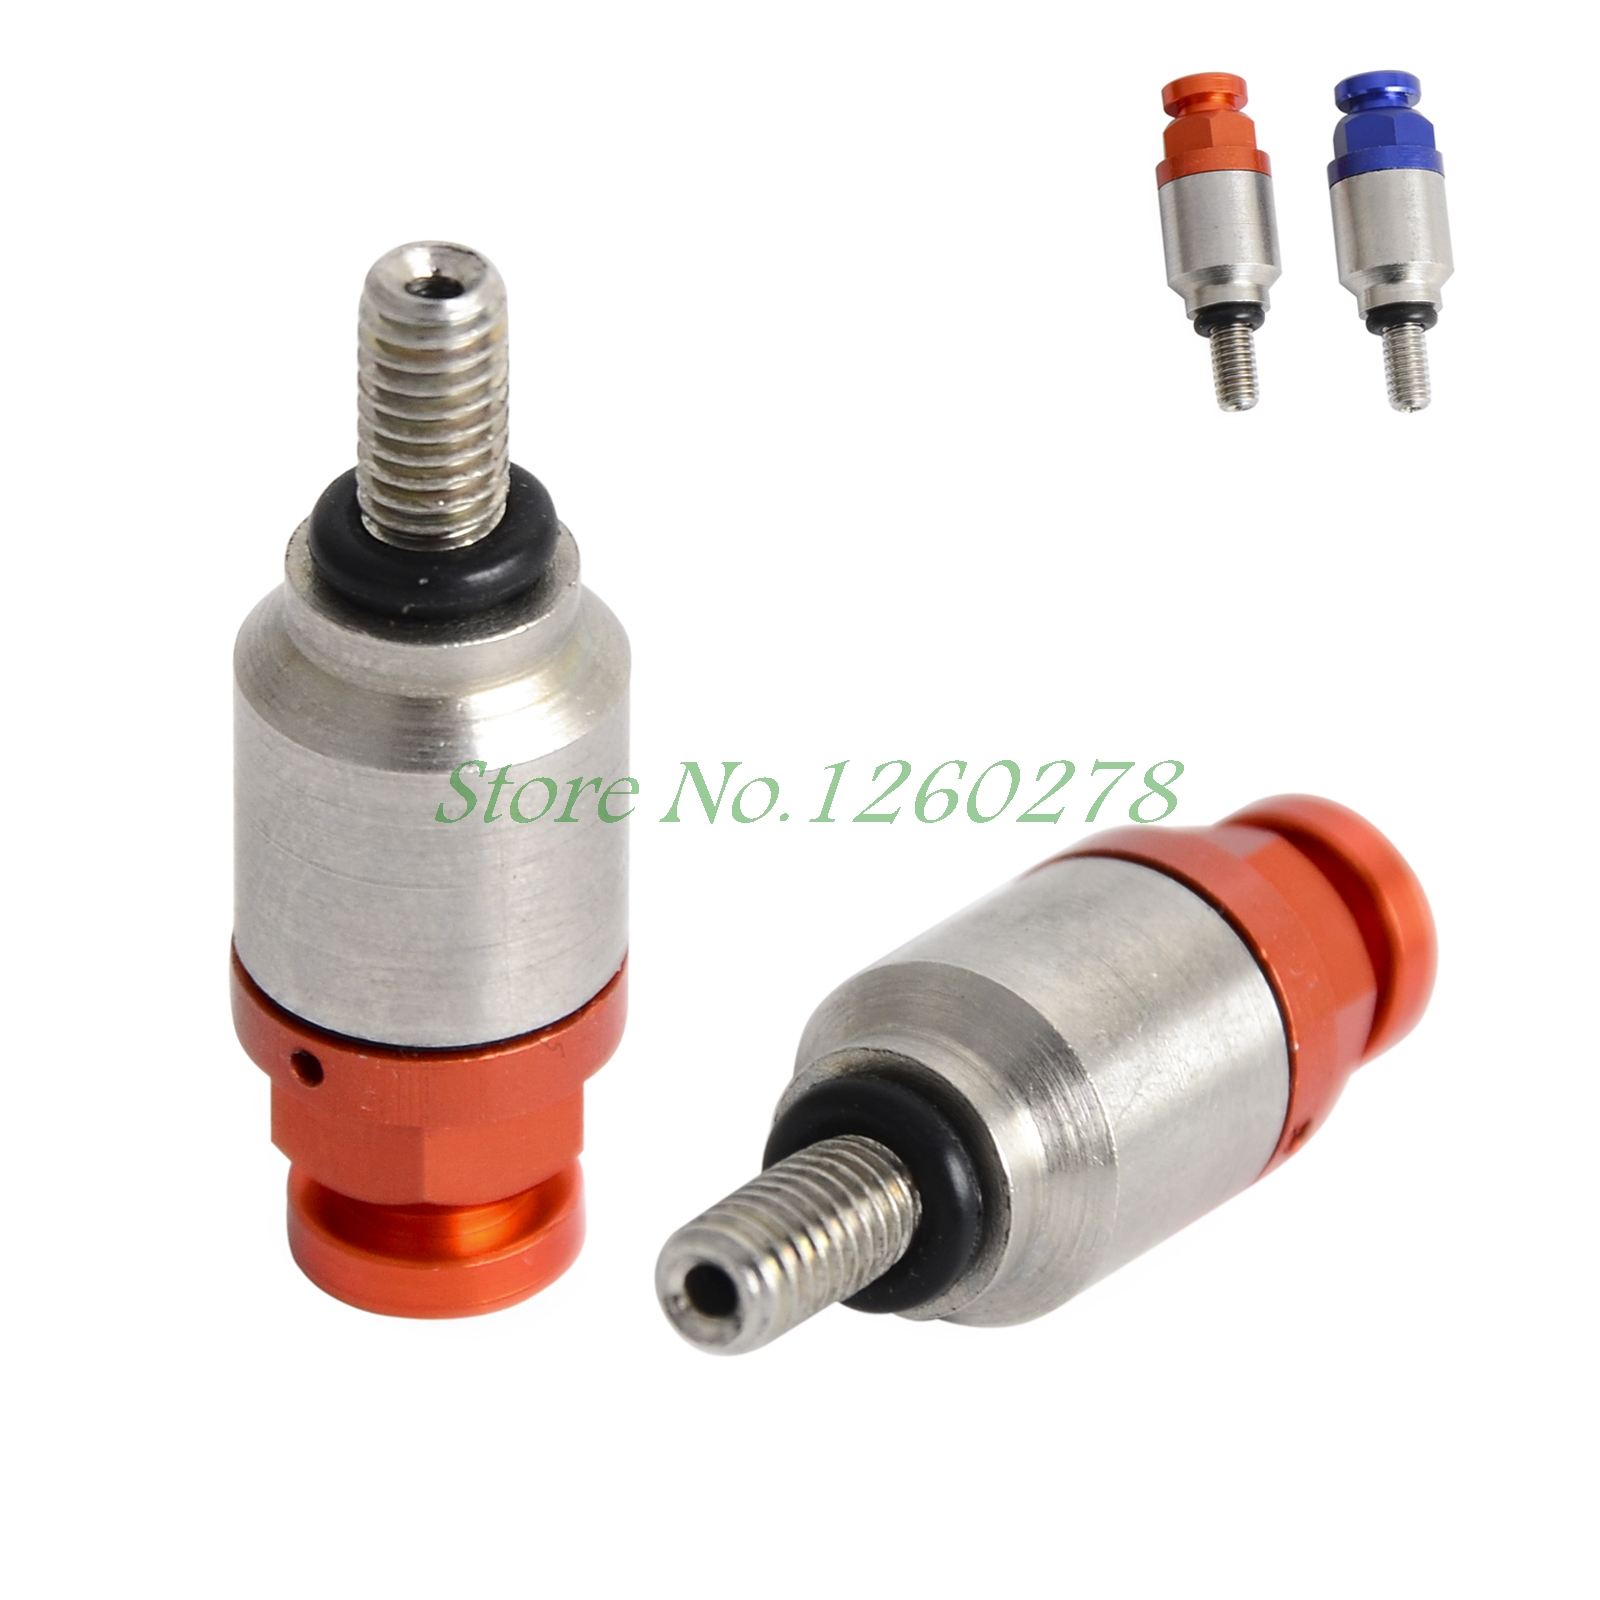 Fork Air Pressure Bleeder Valves For KTM EXC SX SXF XC XCW 105 150 200 250 350 400 450 500 525 530 690 950 990 Enduro Supermoto carb carburetor 36mm pwk fit ktm 2008 2015 250 300 xc xcw sx 2 strokes keihin